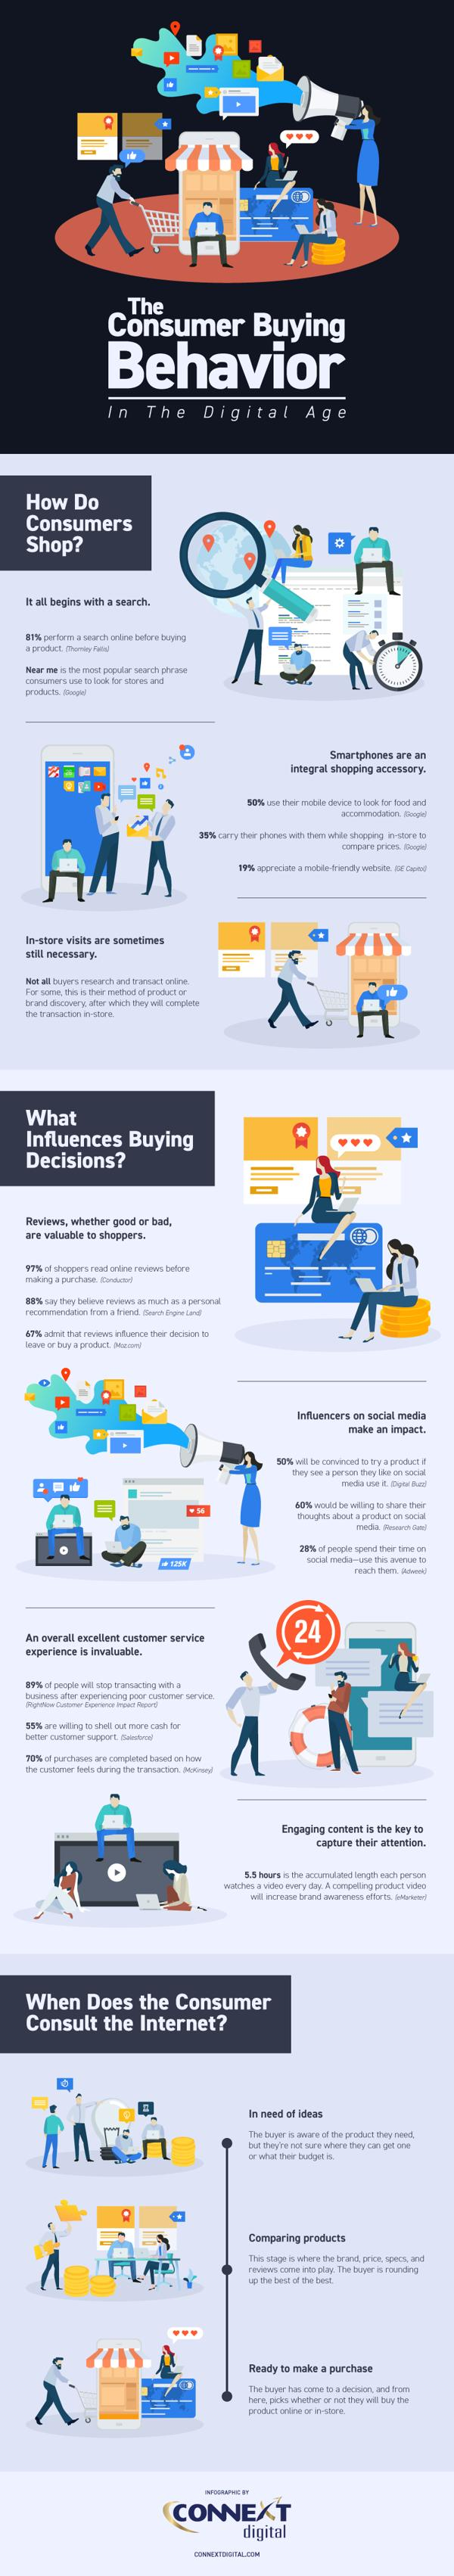 The Consumer Buying Behavior in the Digital Age 1